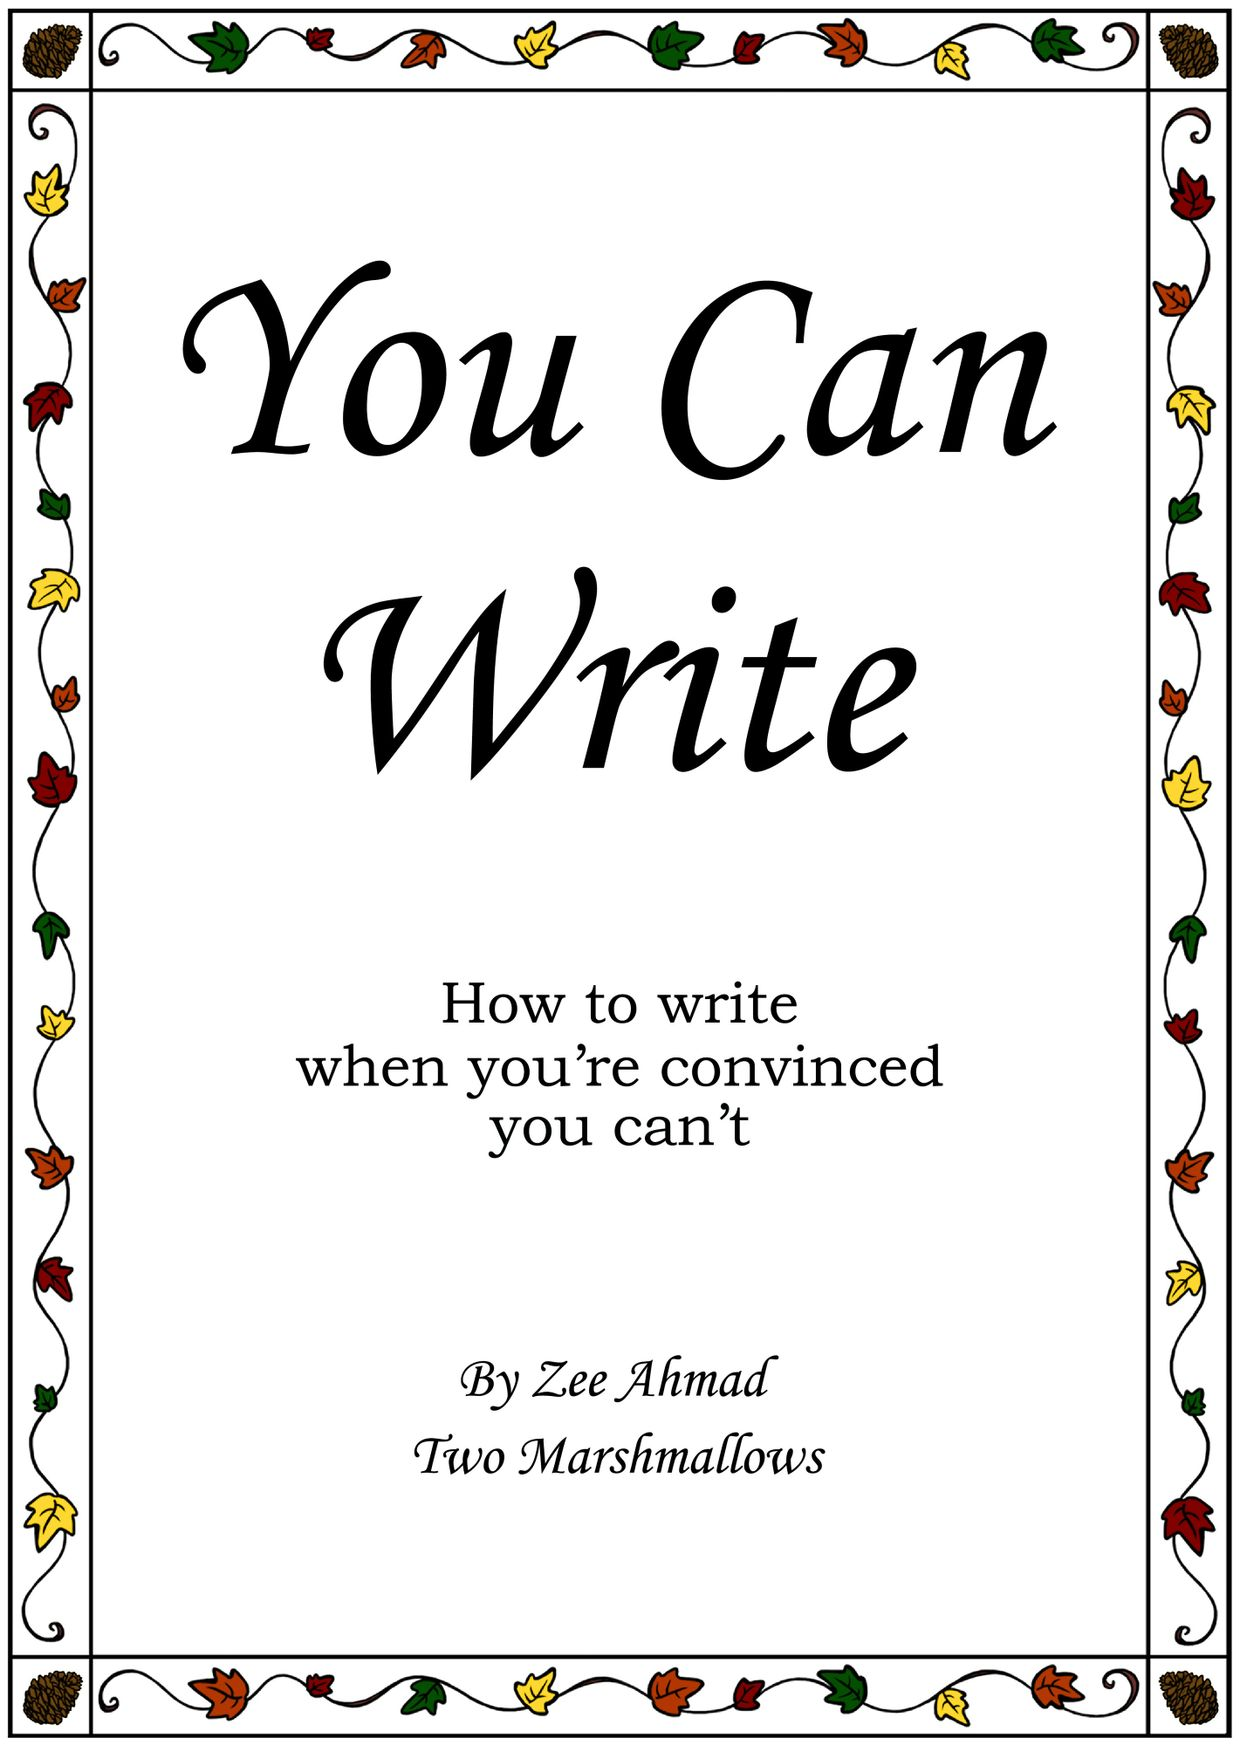 You Can Write - How to write when you're convinced you can't